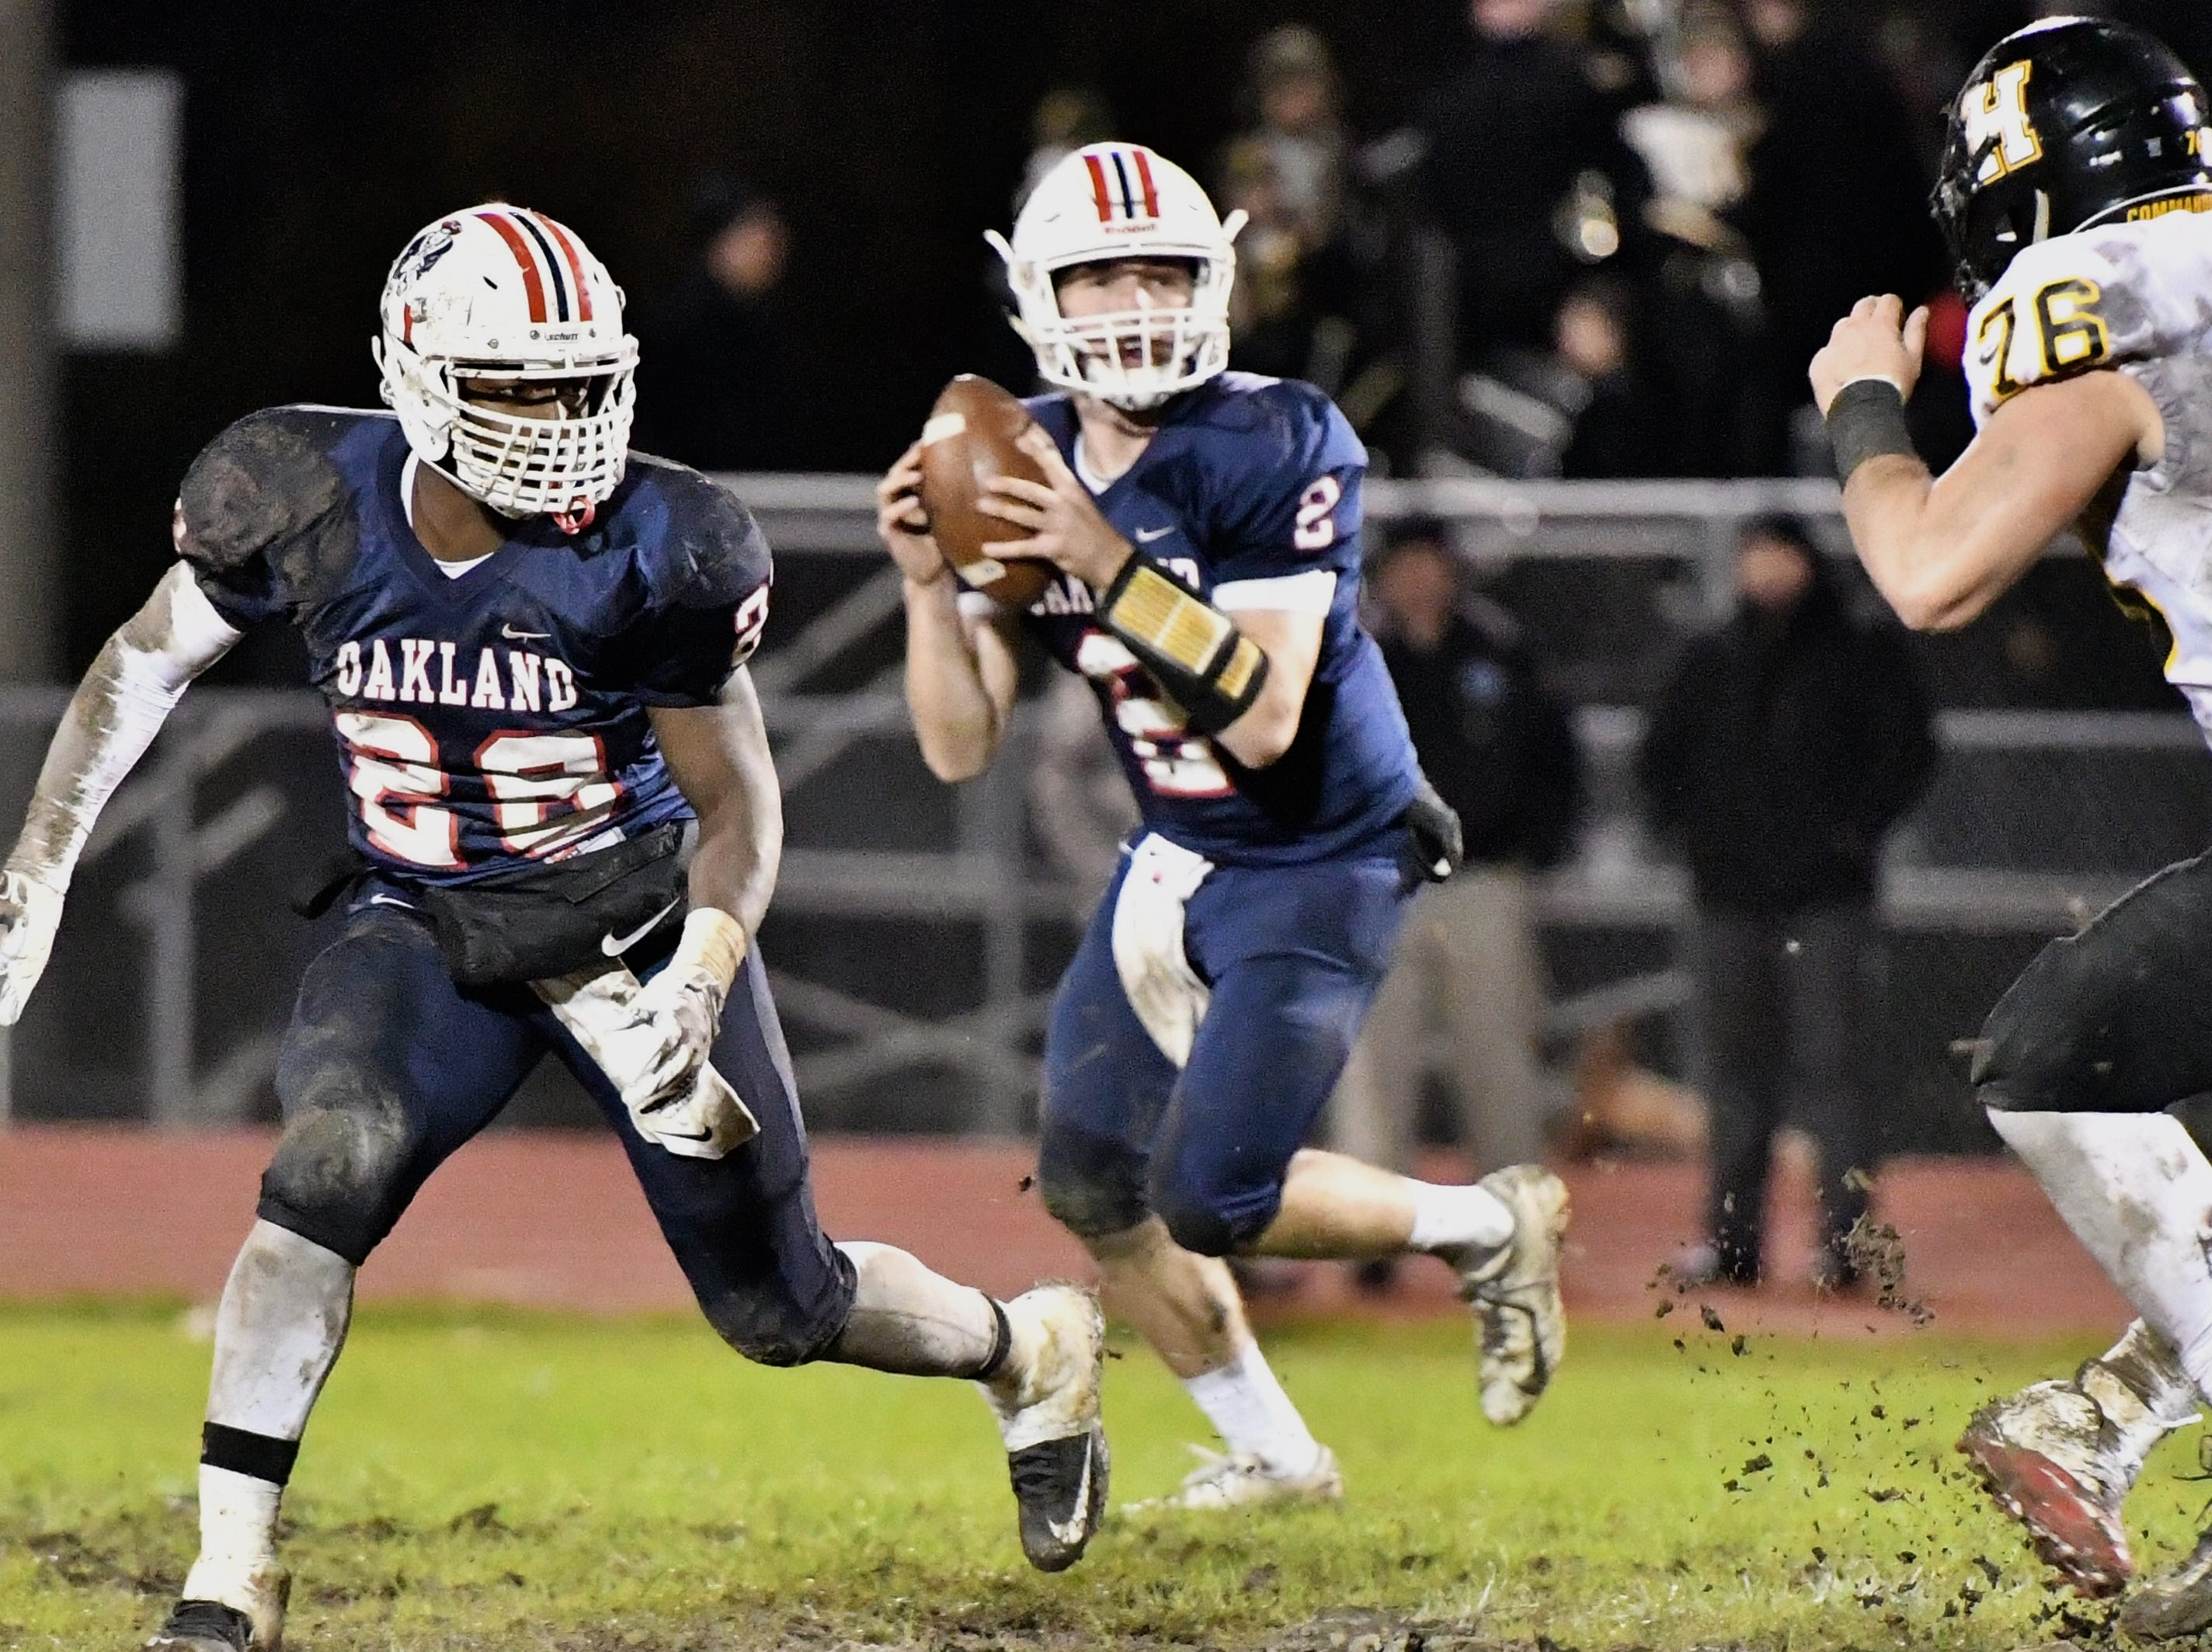 Oakland's Brevin Linnell drops back to pass Friday night as teammate Xavier Myers prepares to block HHS' Wilson Higgs.